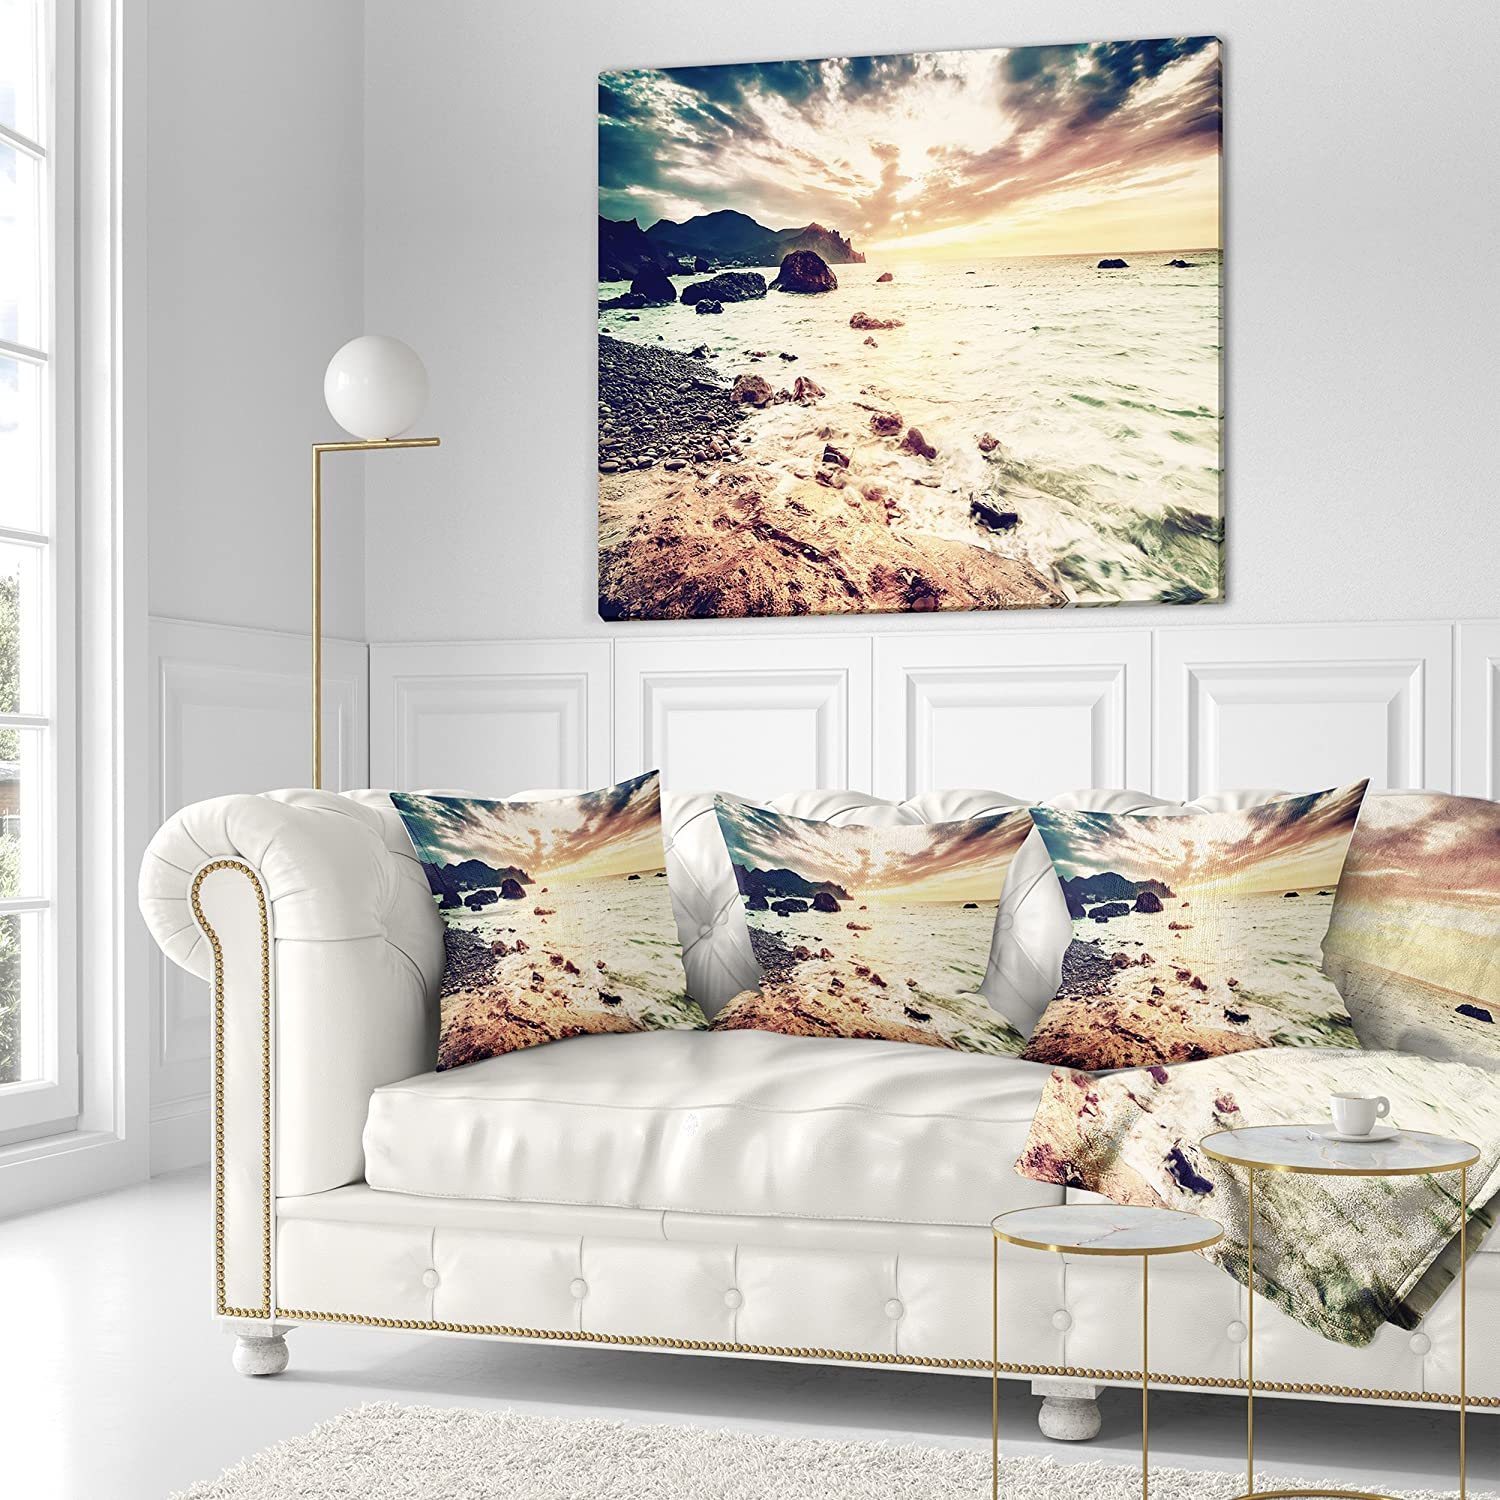 Designart CU10675-16-16 Summer Seascape with Scenic View Seashore Cushion Cover for Living Room Sofa Throw Pillow 16 in in x 16 in Insert Printed On Both Side